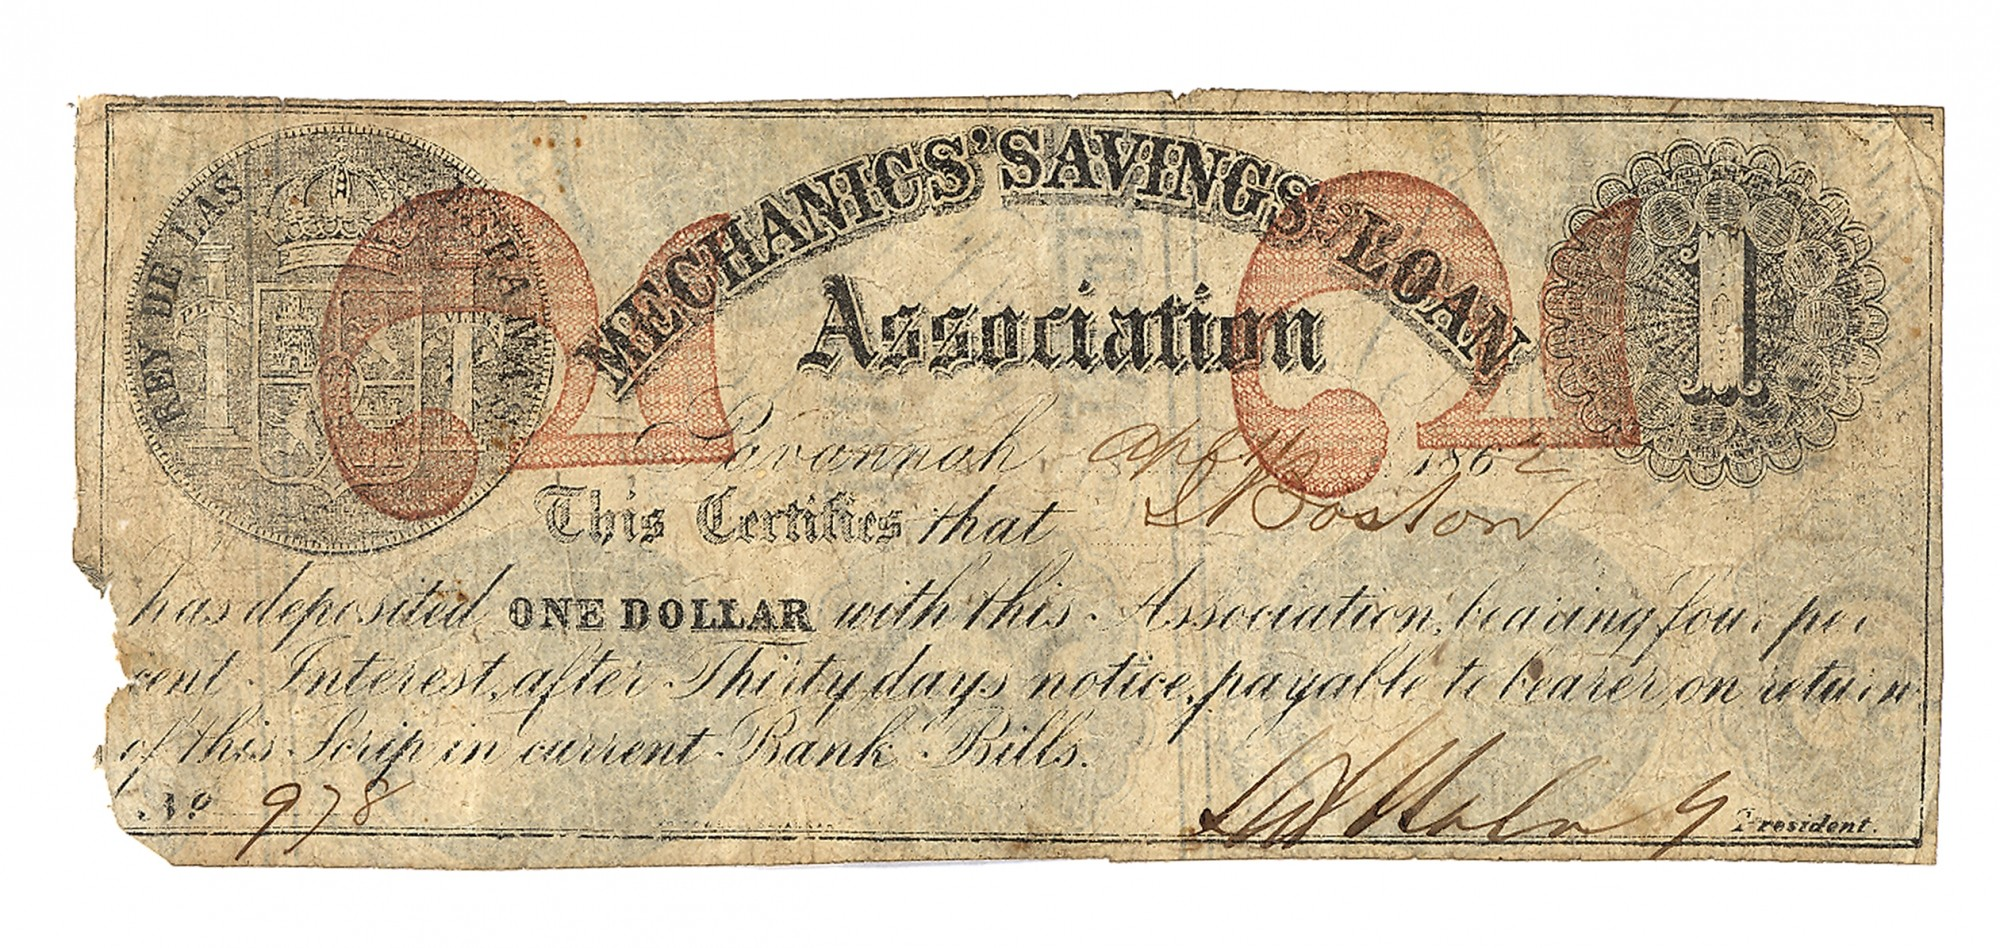 MECHANICS SAVING AND LOAN ASSOCIATION, GEORGIA, $1 NOTE